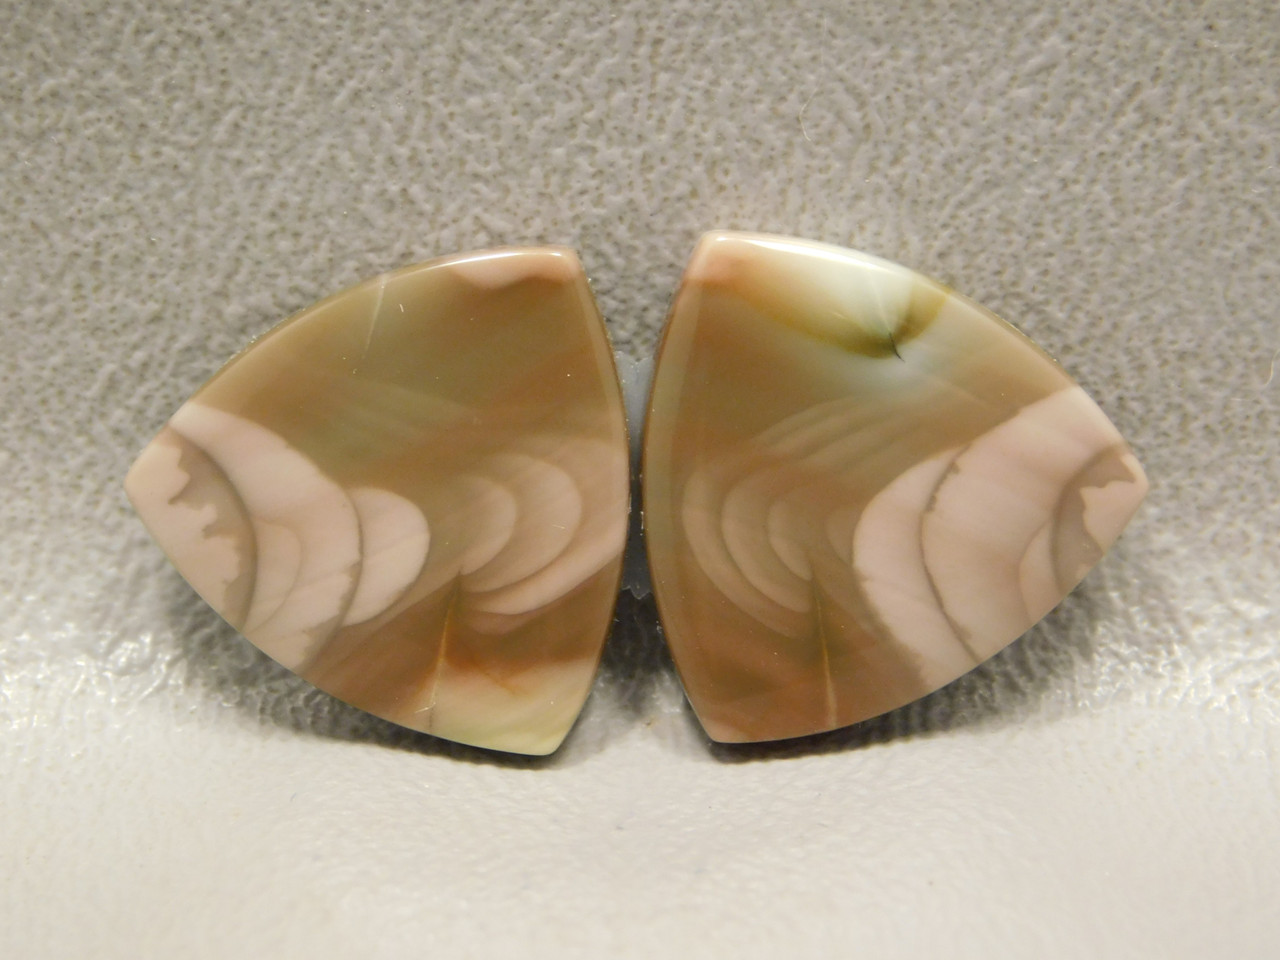 Royal Imperial Jasper Cabochon Stones Matched Pair Trillions #7